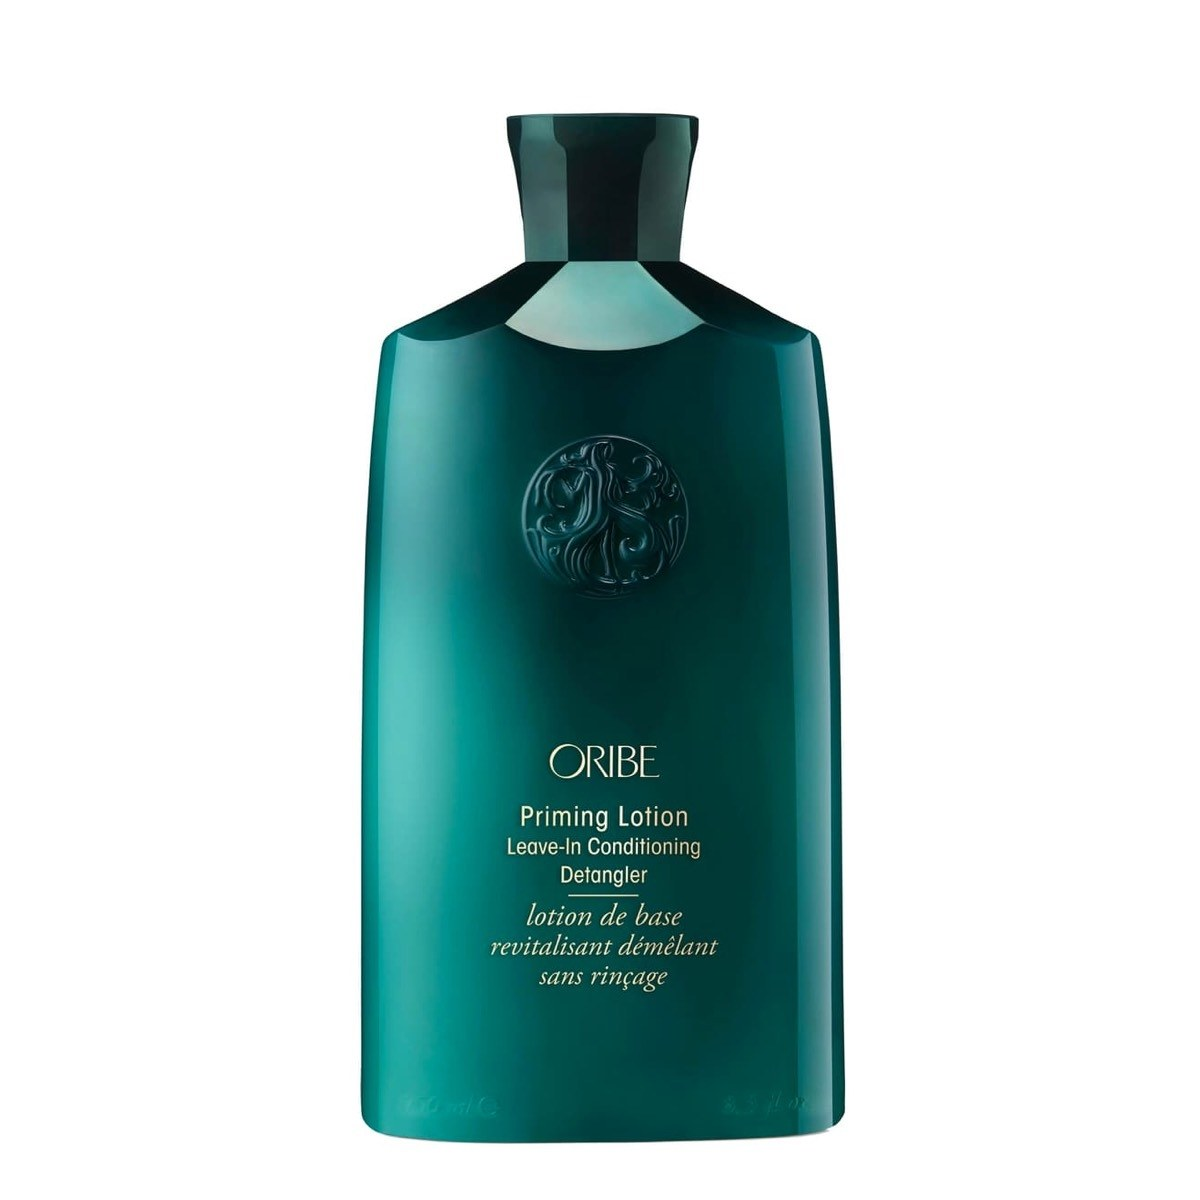 Oribe Priming Lotions